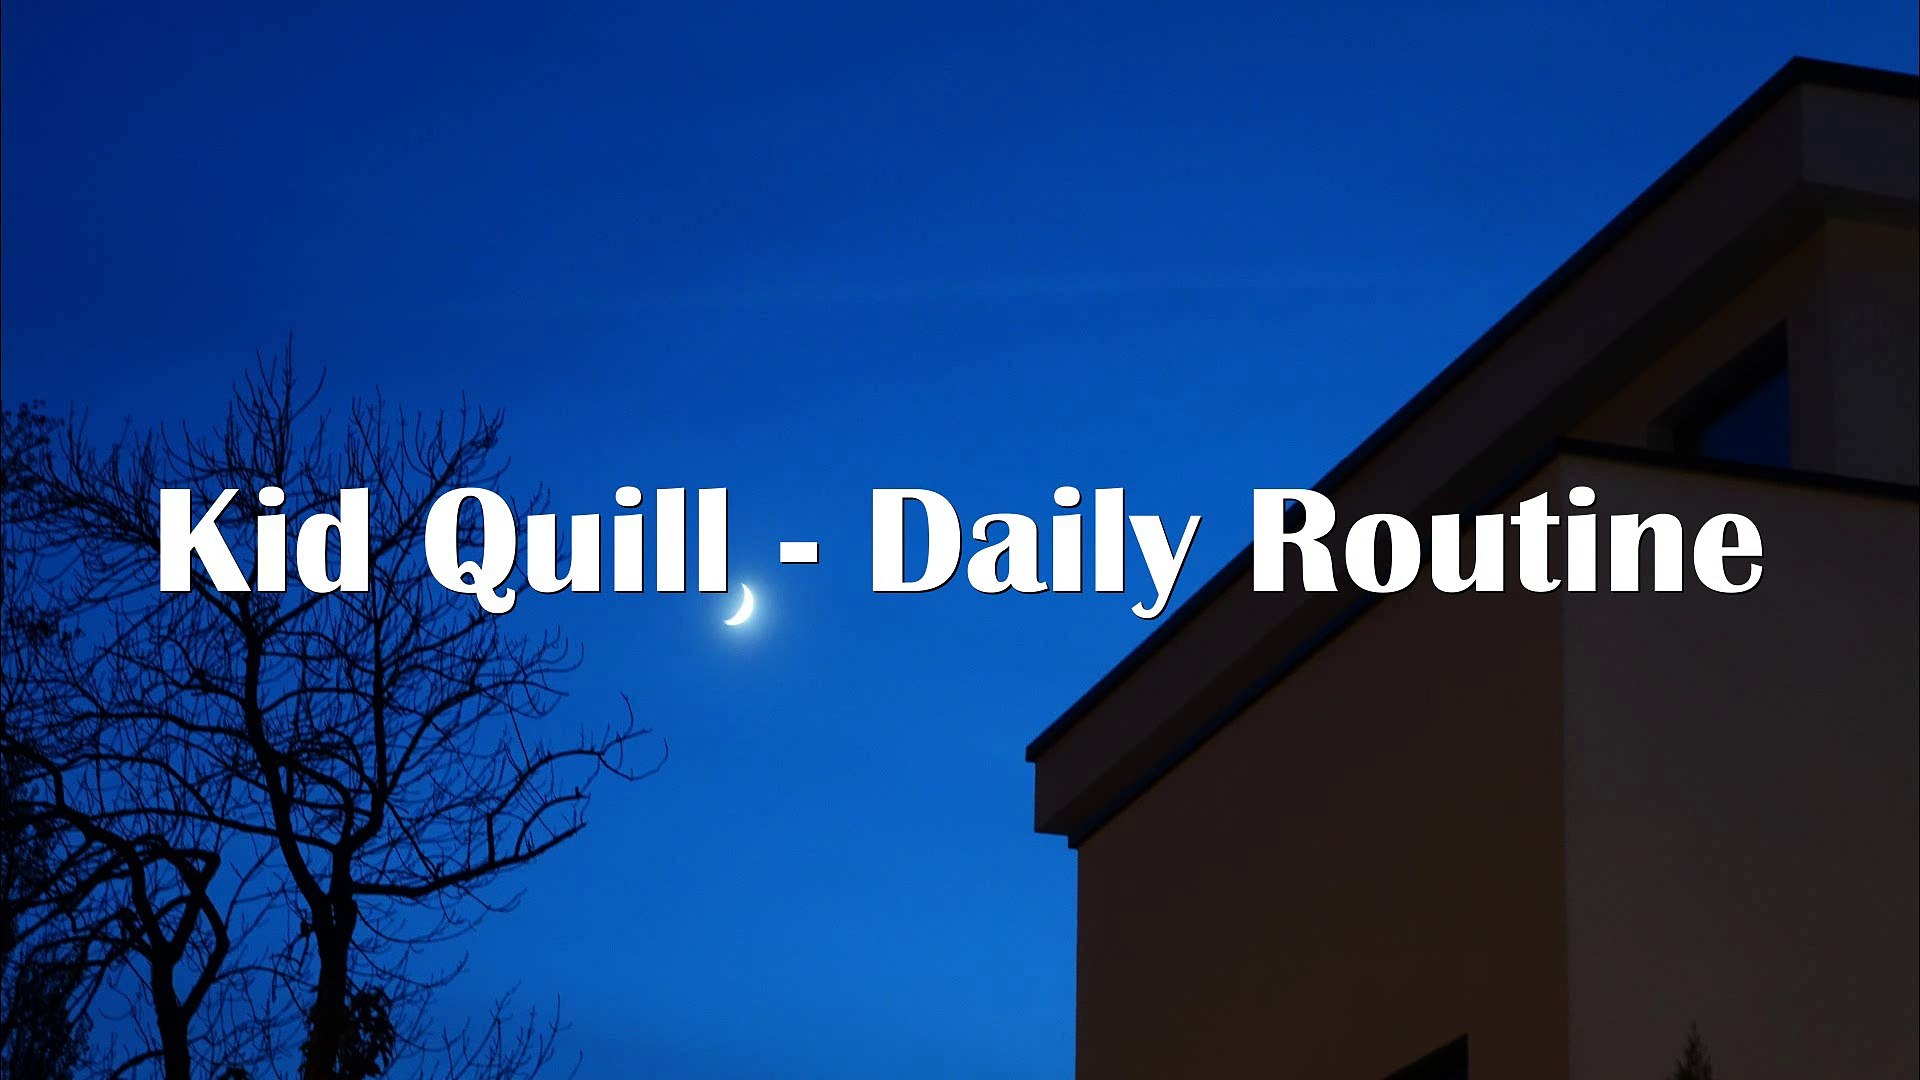 Kid Quill - Daily Routine